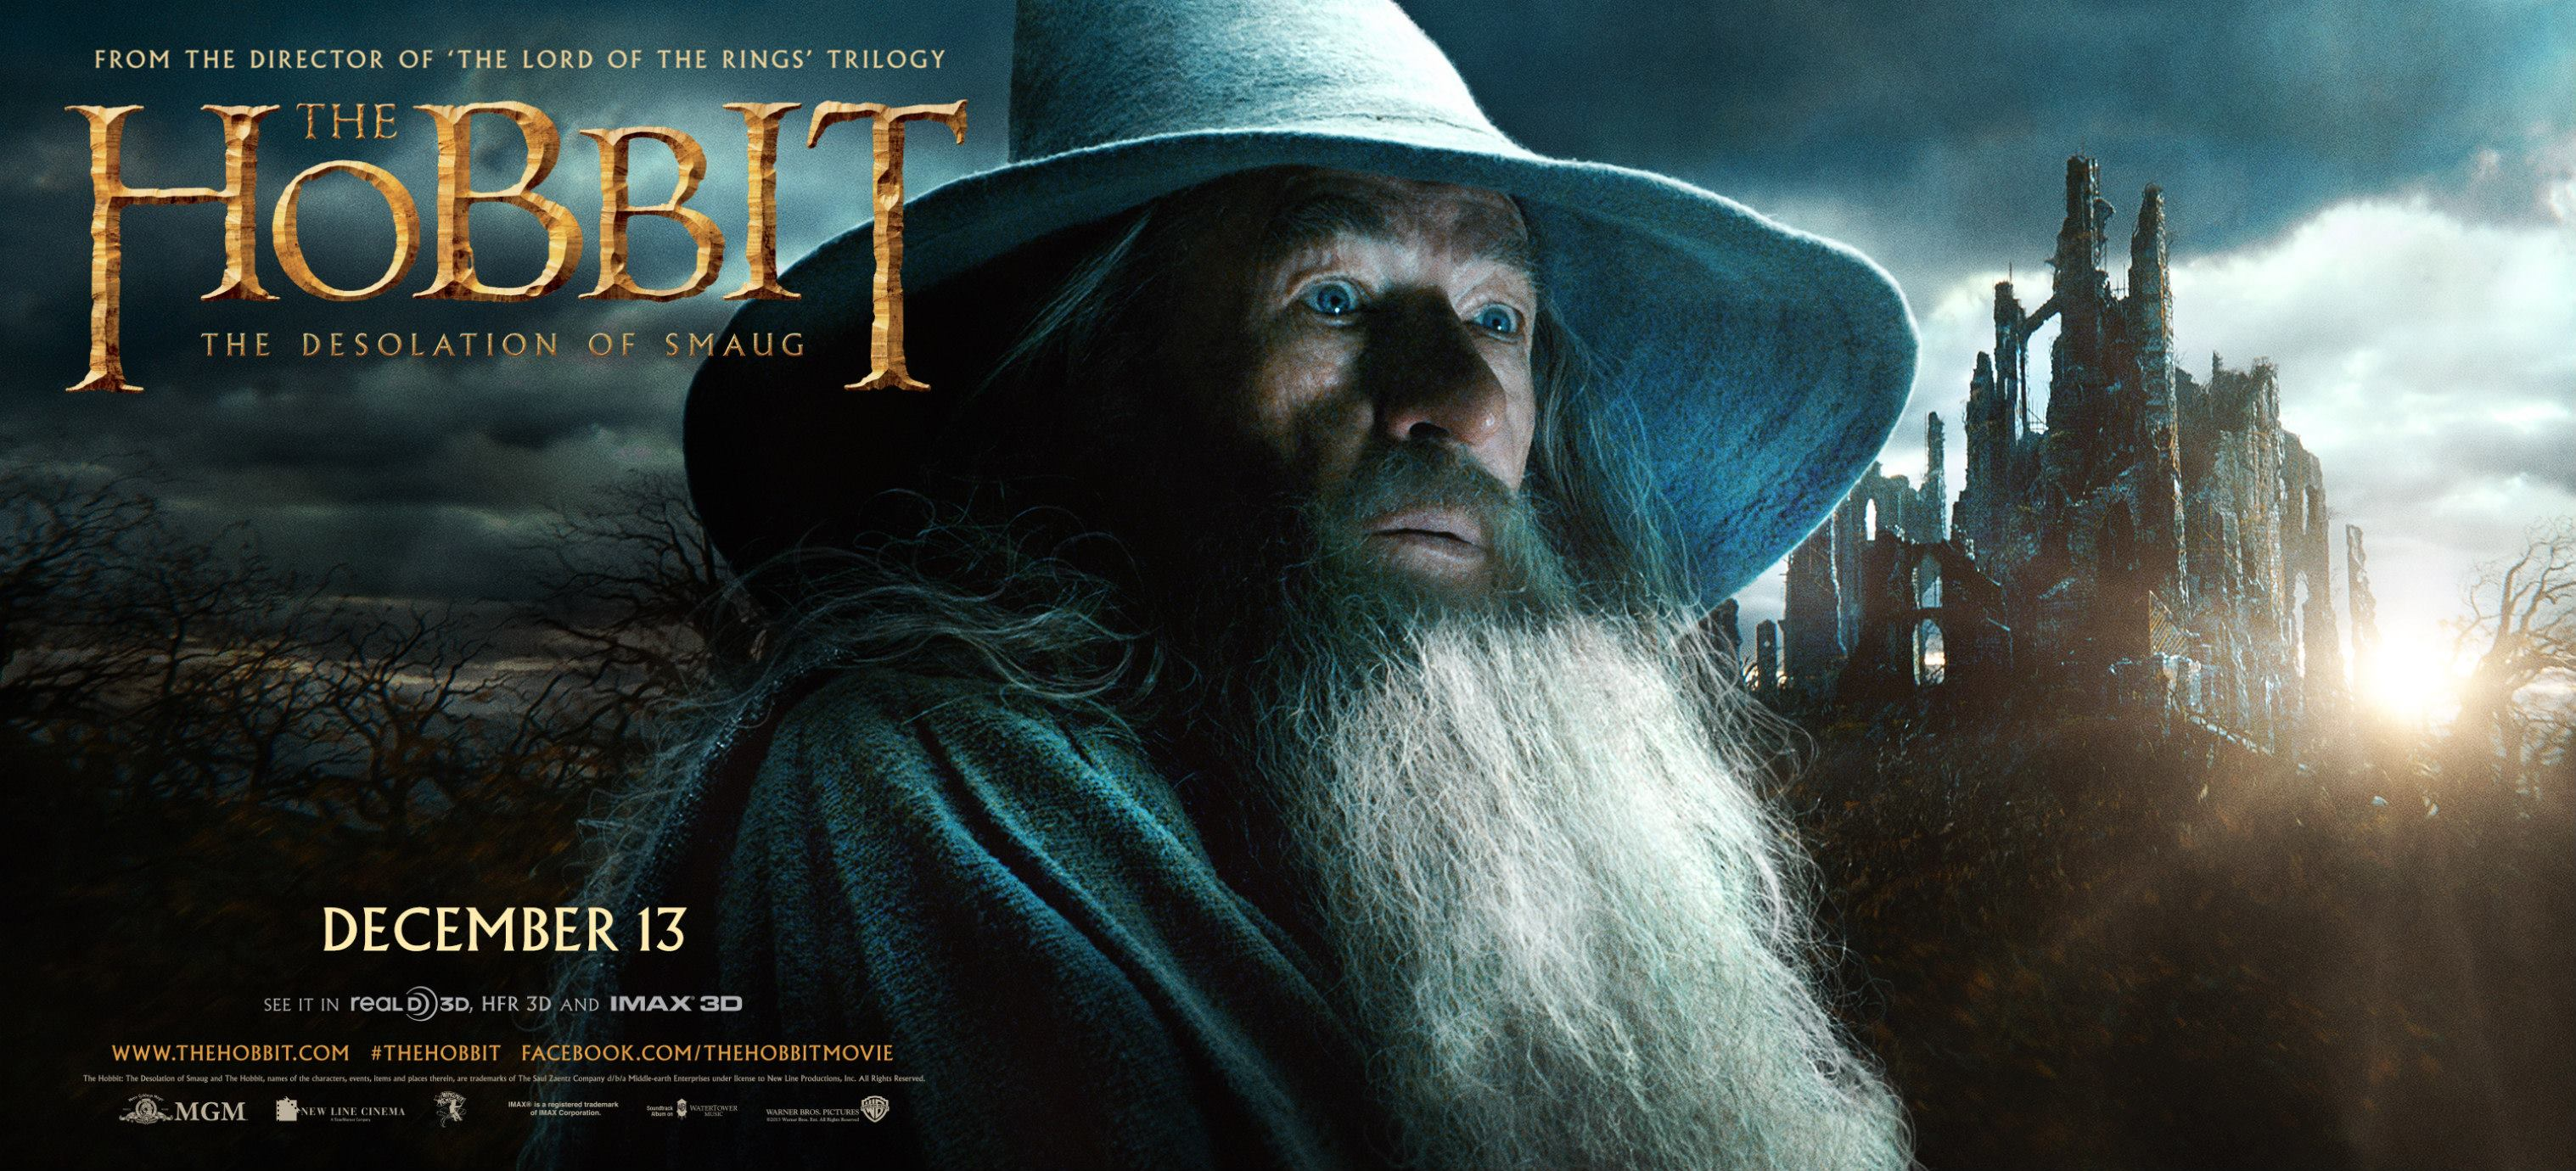 THE HOBBIT THE DESOLATION OF SMAUG-Official Poster Banner PROMO BANNER-30SETEMBRO2013-03